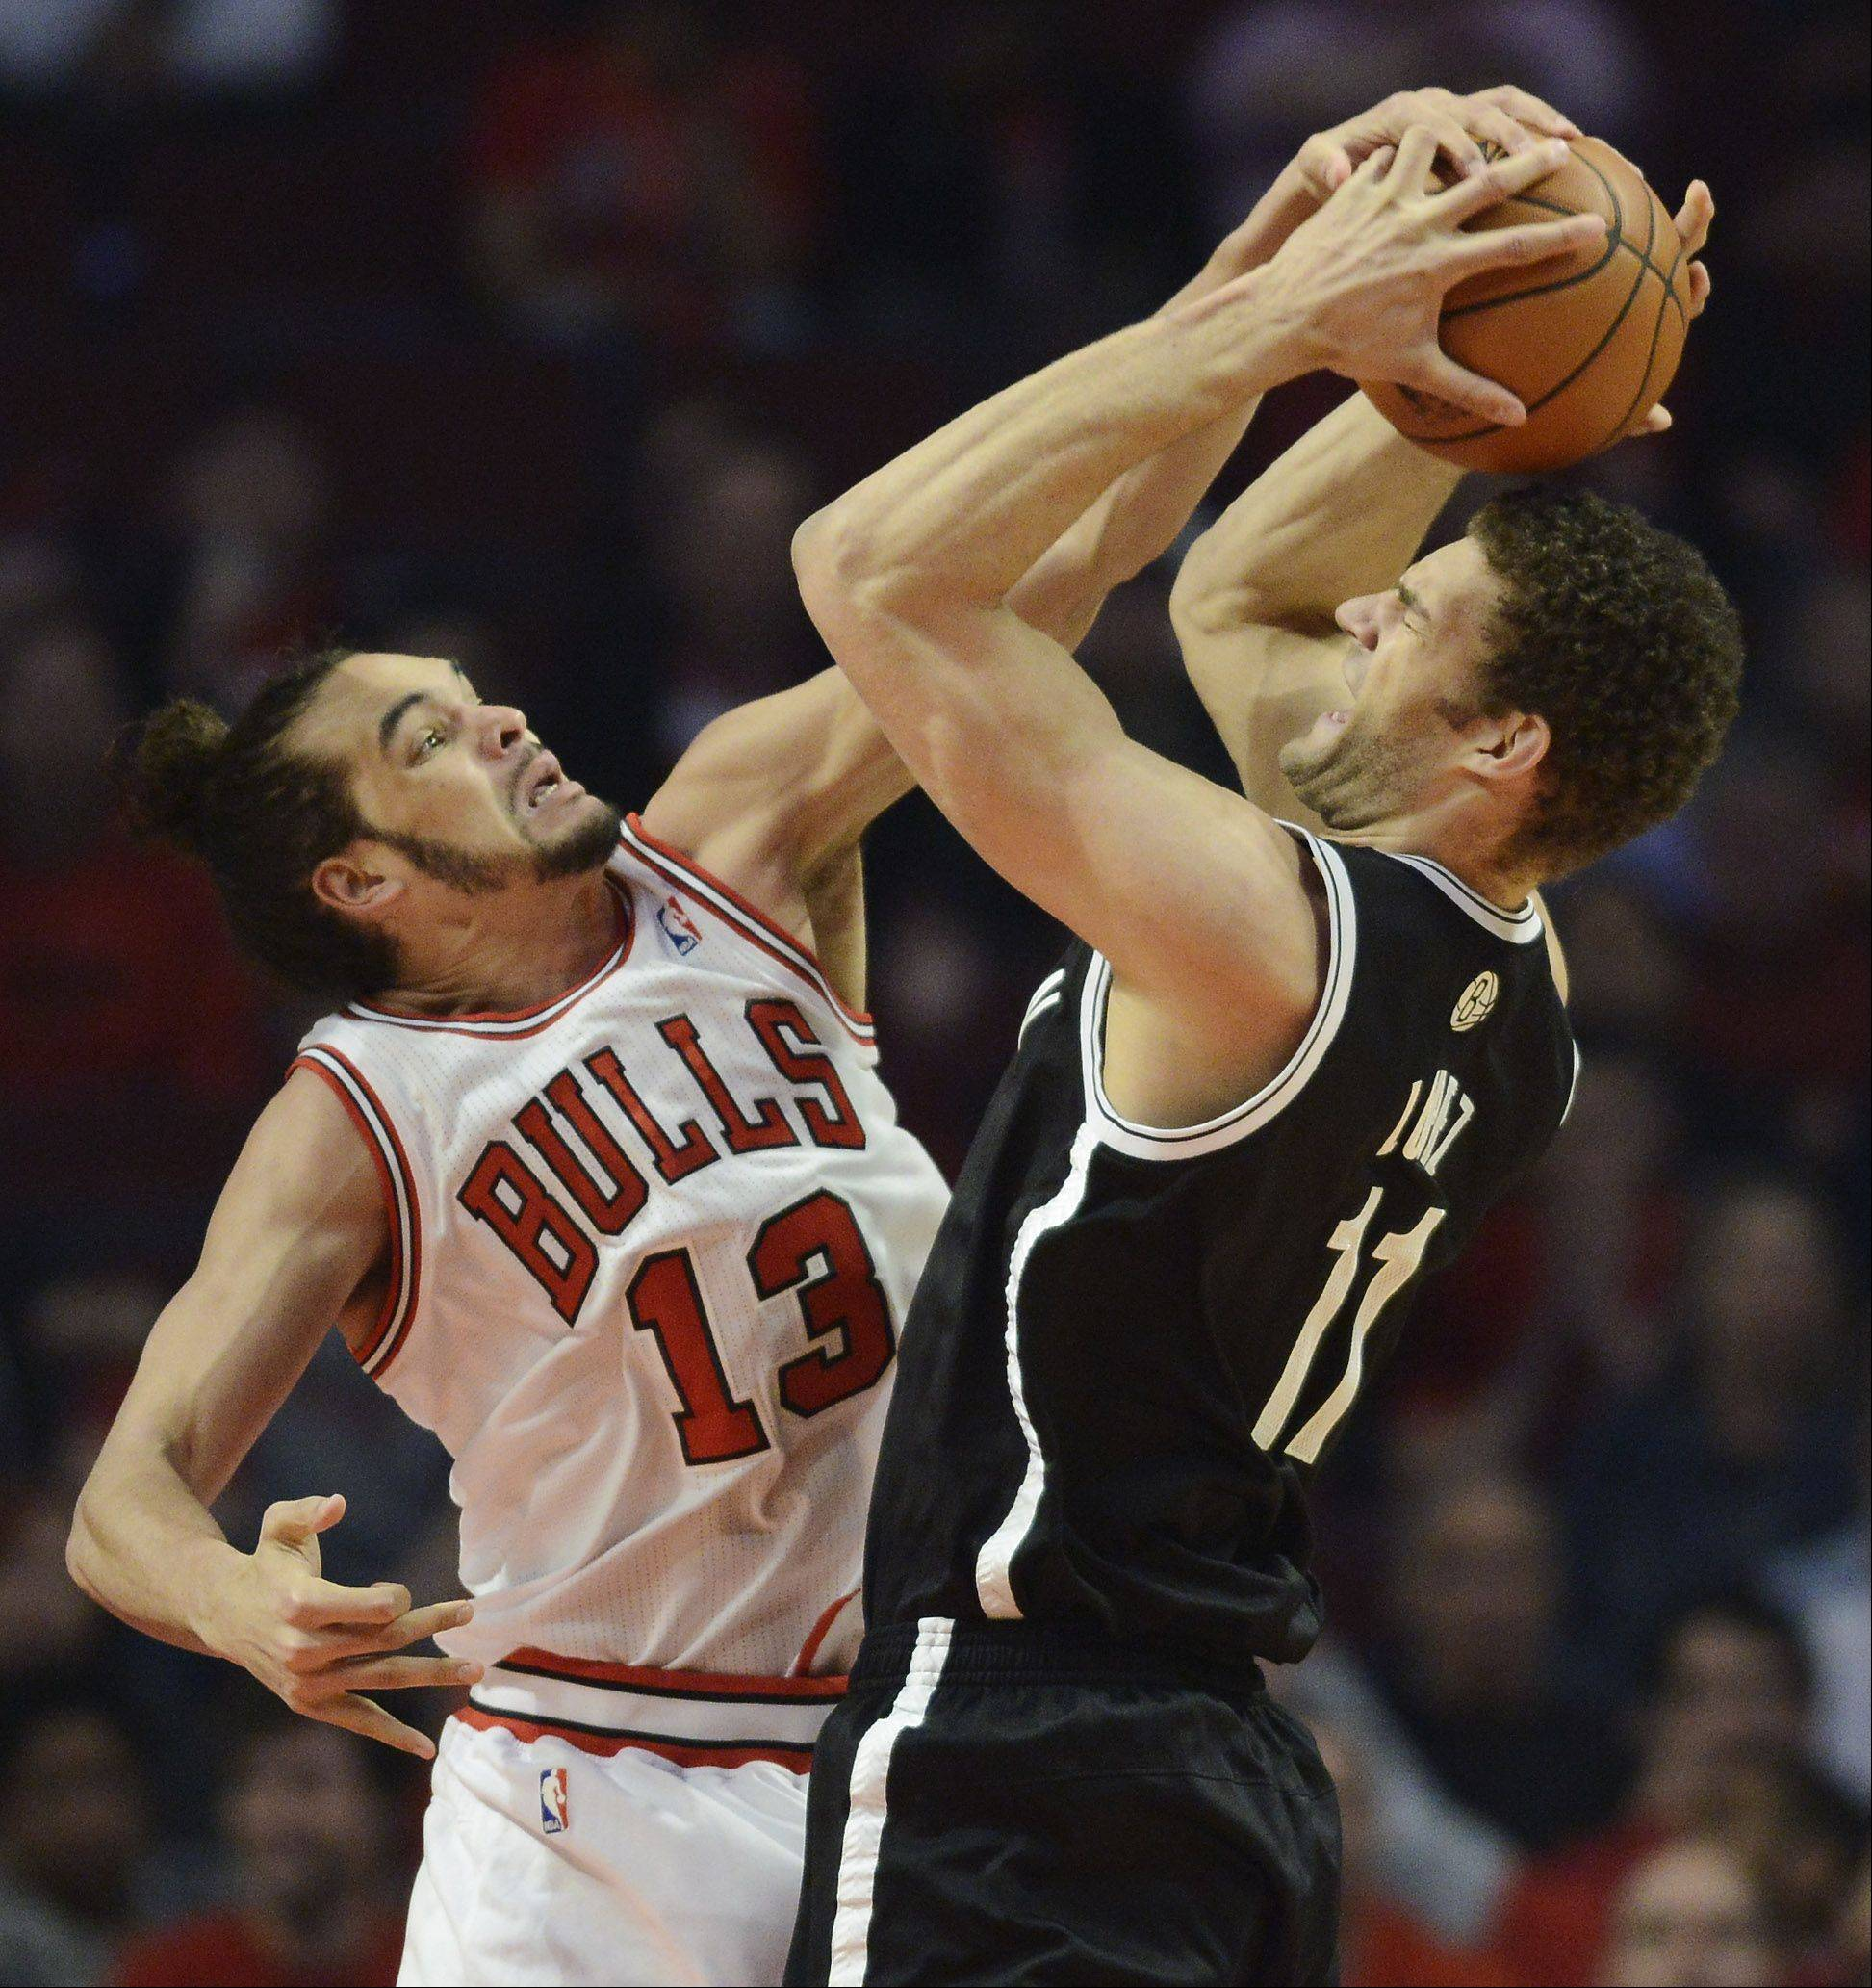 Illnesses don't faze Bulls' Thibodeau